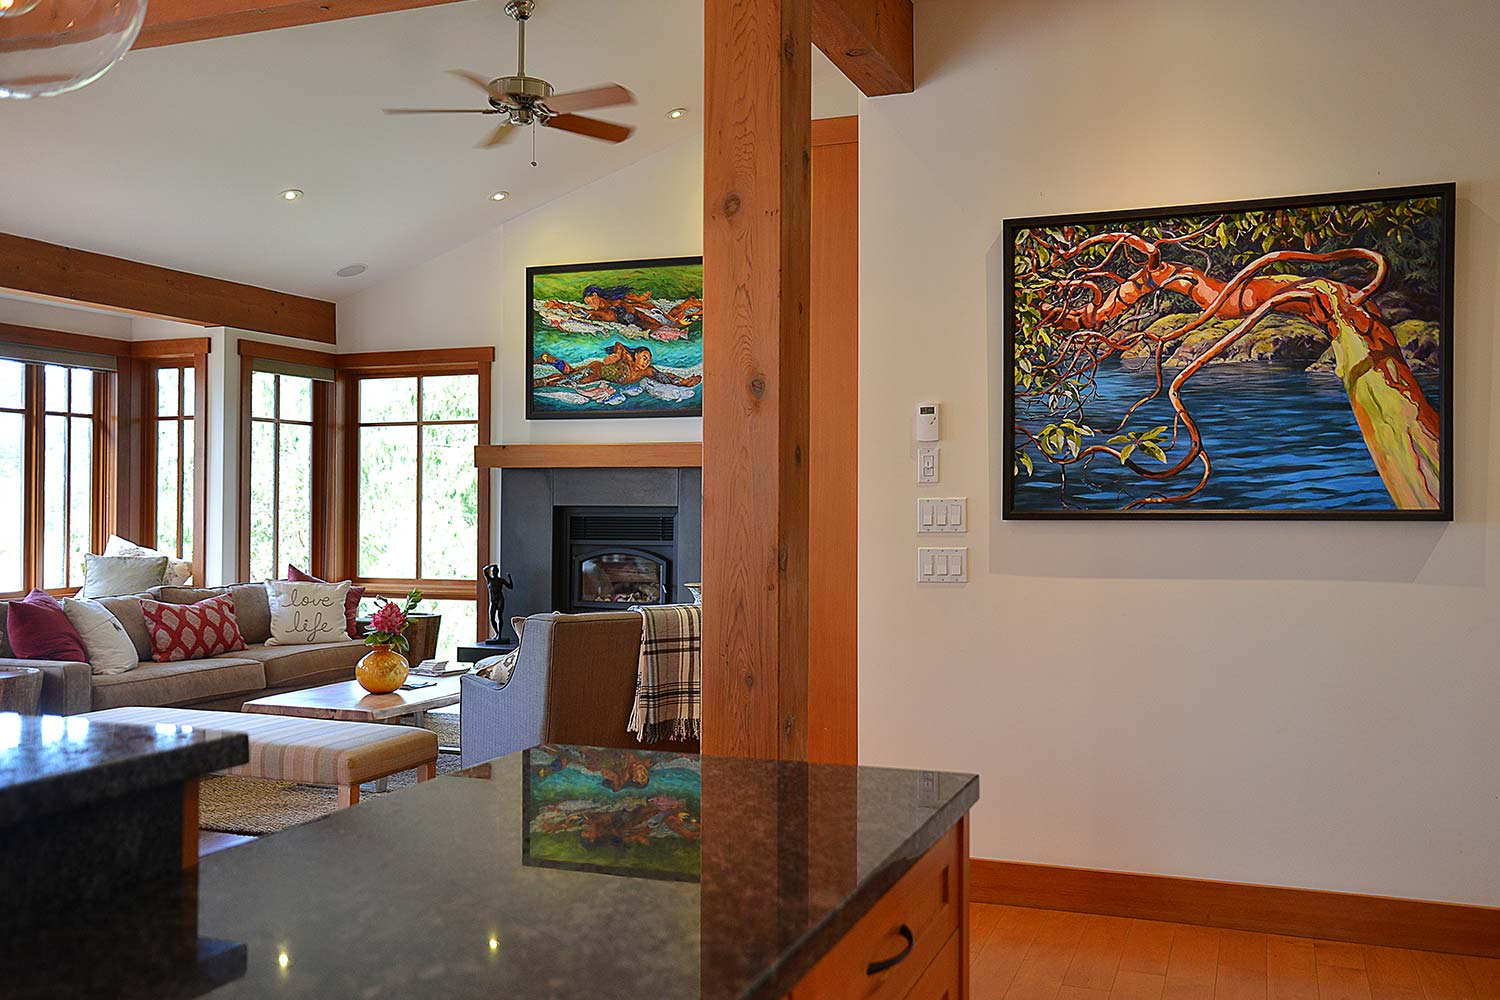 Vibrant artwork in the living room of this luxury Sunshine Coast, British Columbia vacation rental.